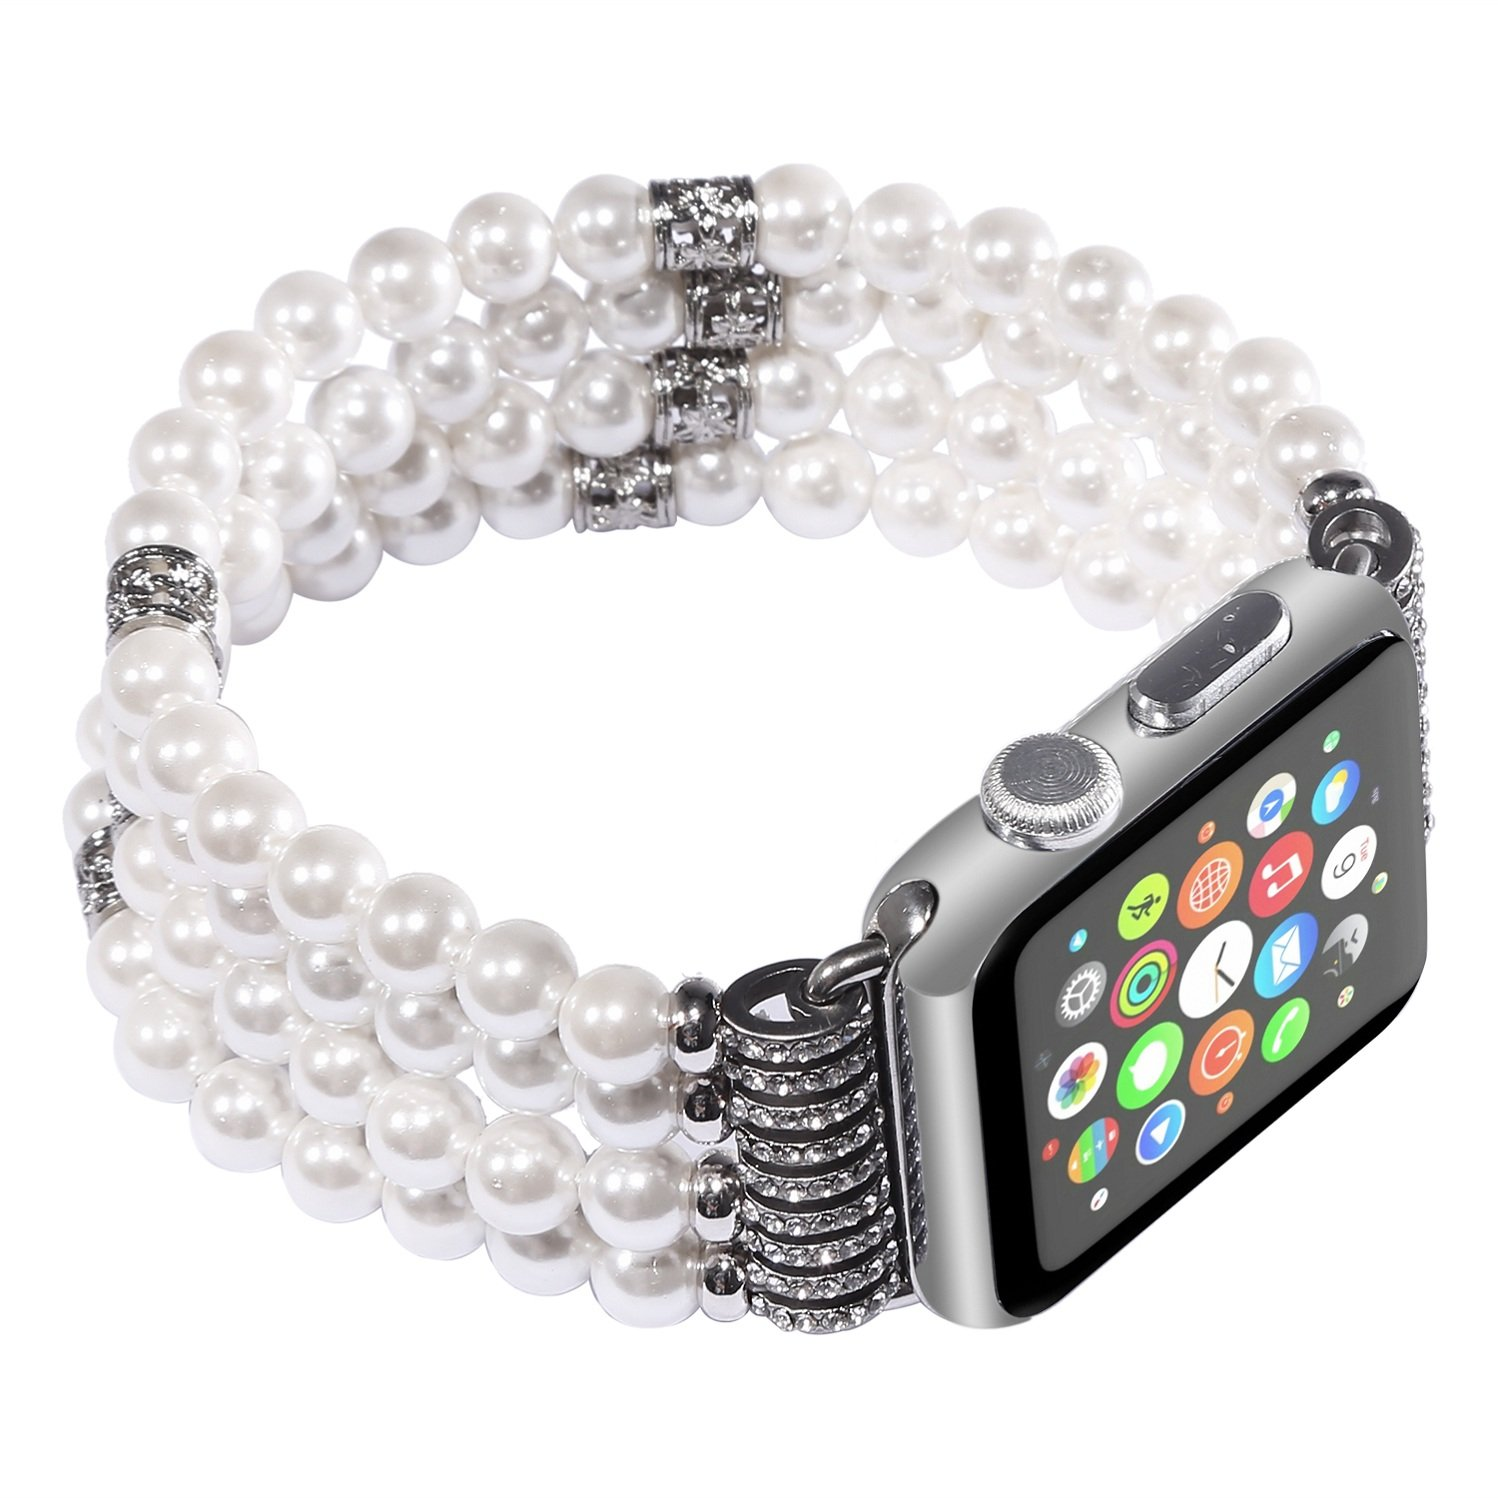 Juzzhou Band For Apple Watch iWatch Series 1/2/3 Replacement Bracelet Handmade Beaded Faux Pearl Natural Bling Stone Crystal Agate Jewels Elastic Stretch Wrist Strap Wristband Wriststrap White 38mm